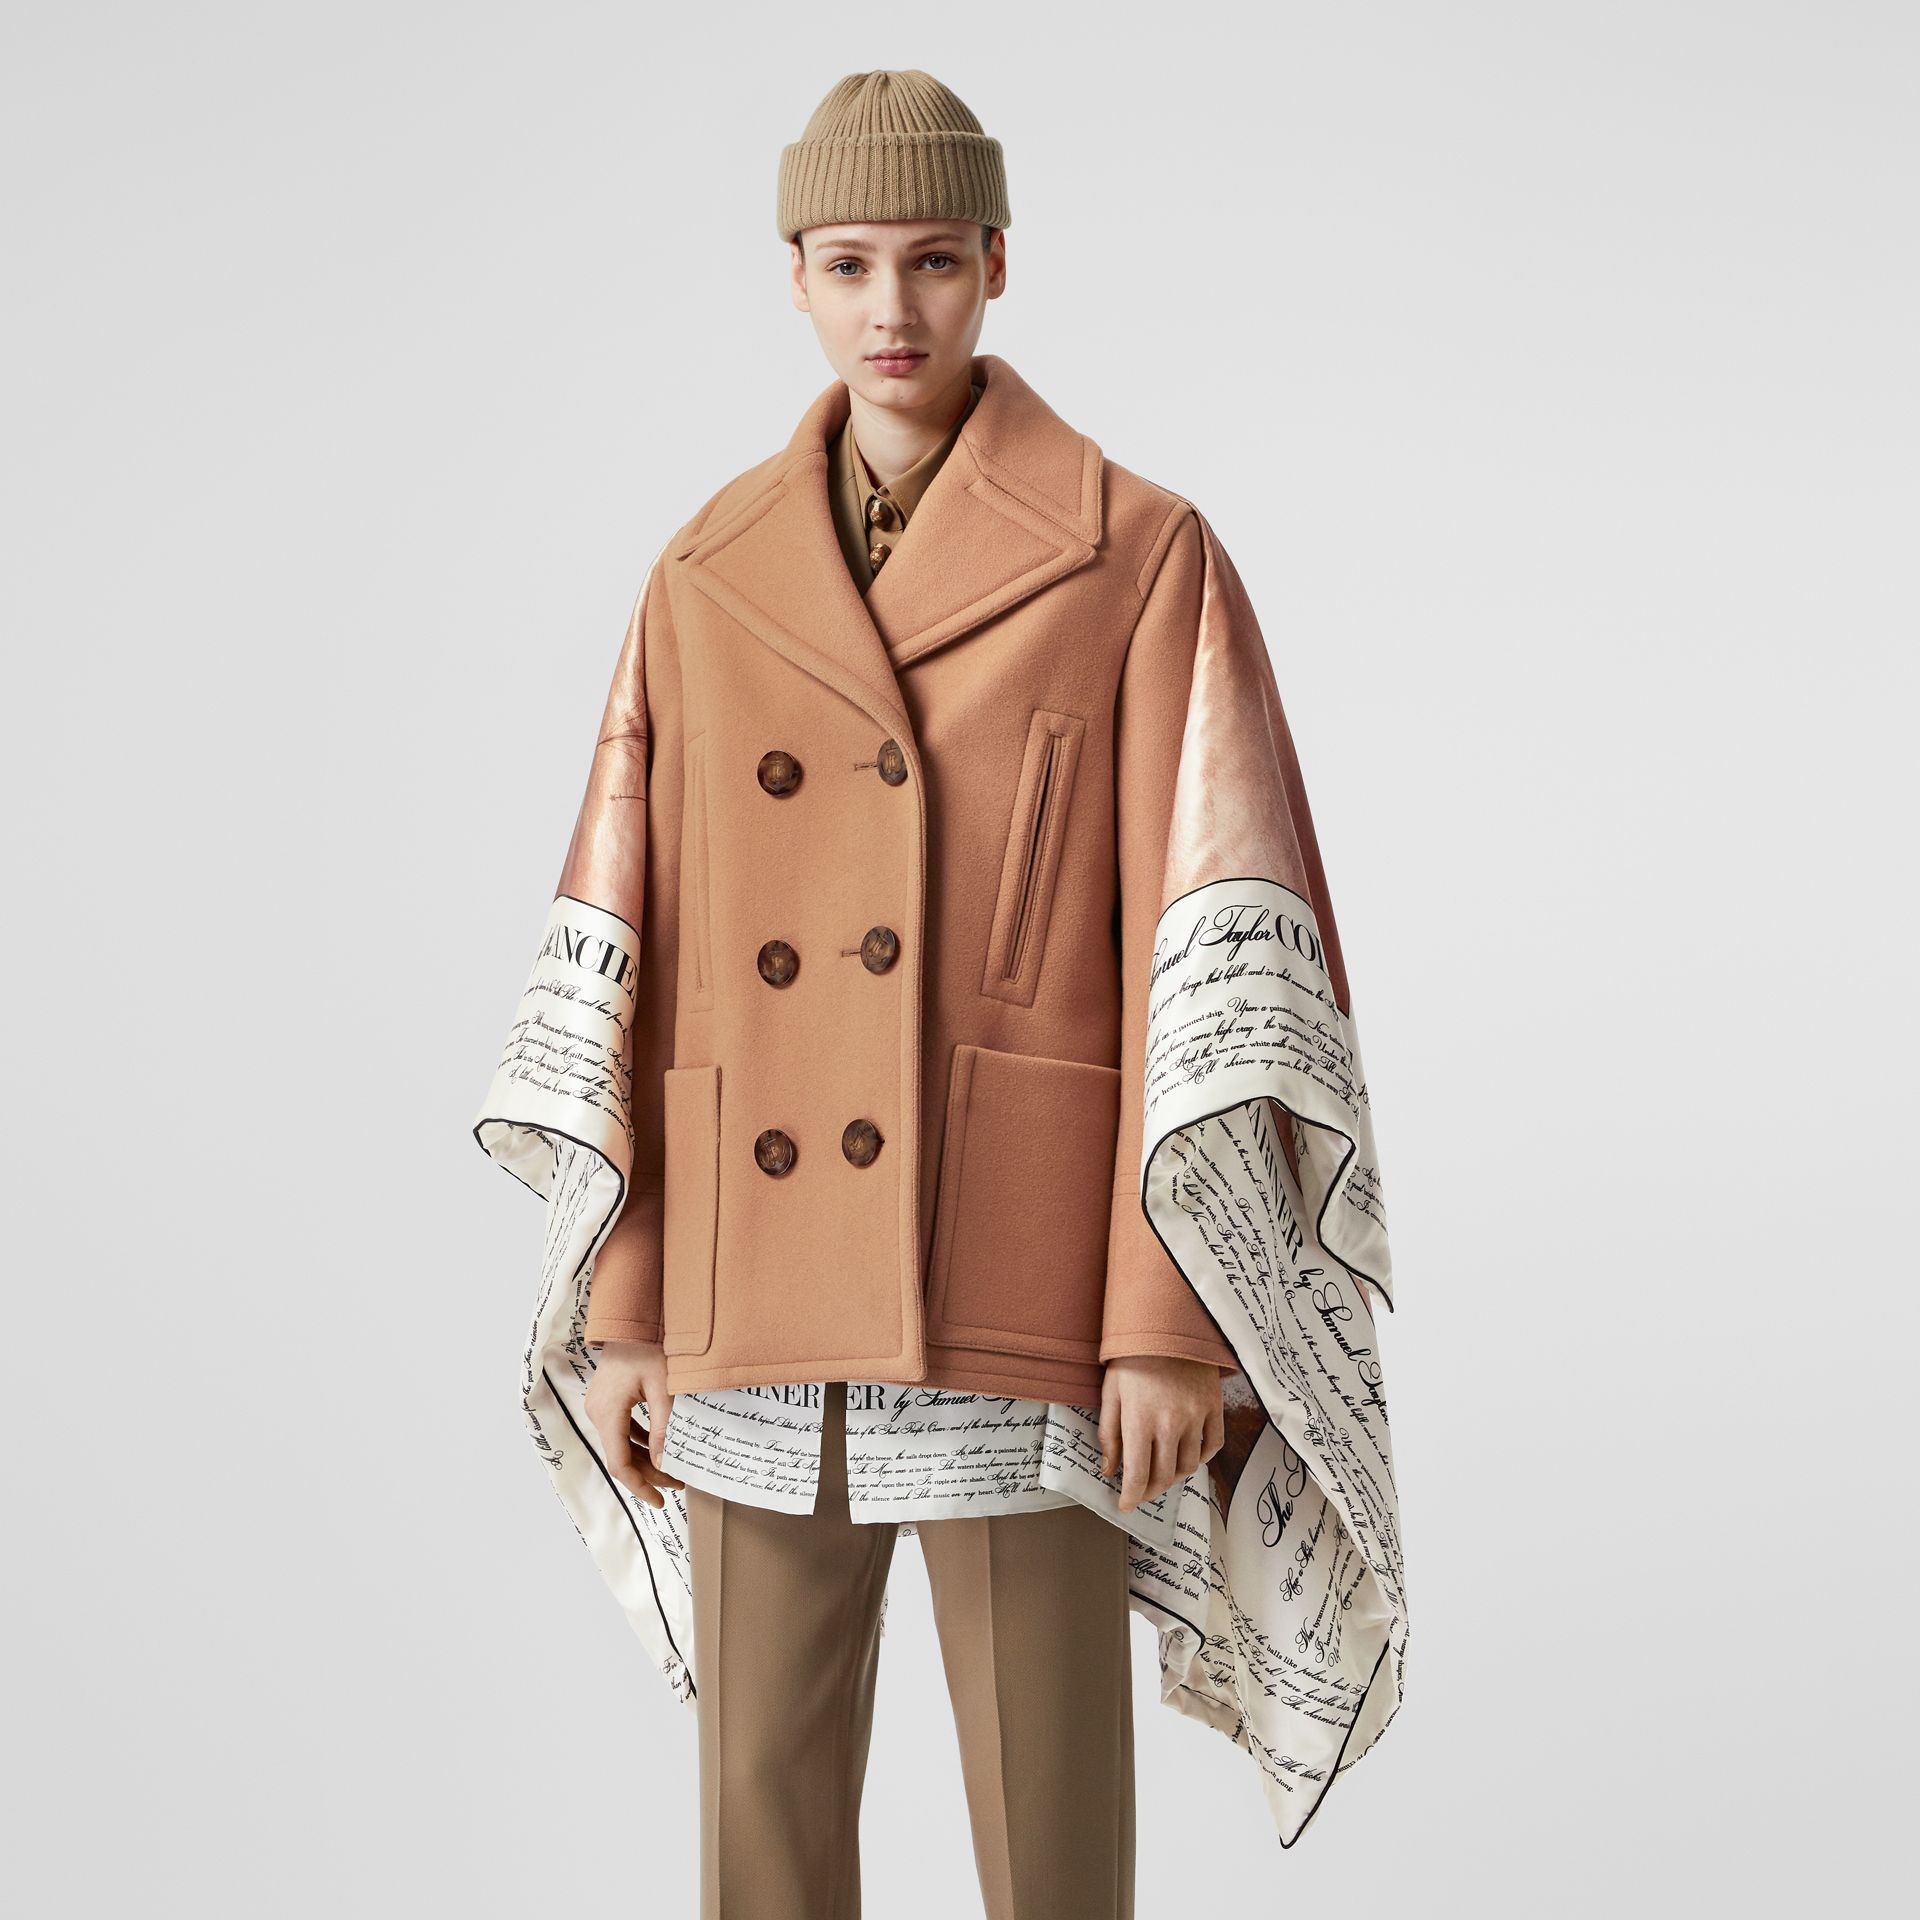 Mariner Print Blanket Detail Technical Wool Pea Coat in Warm Camel - Women | Burberry Hong Kong S.A.R - gallery image 5